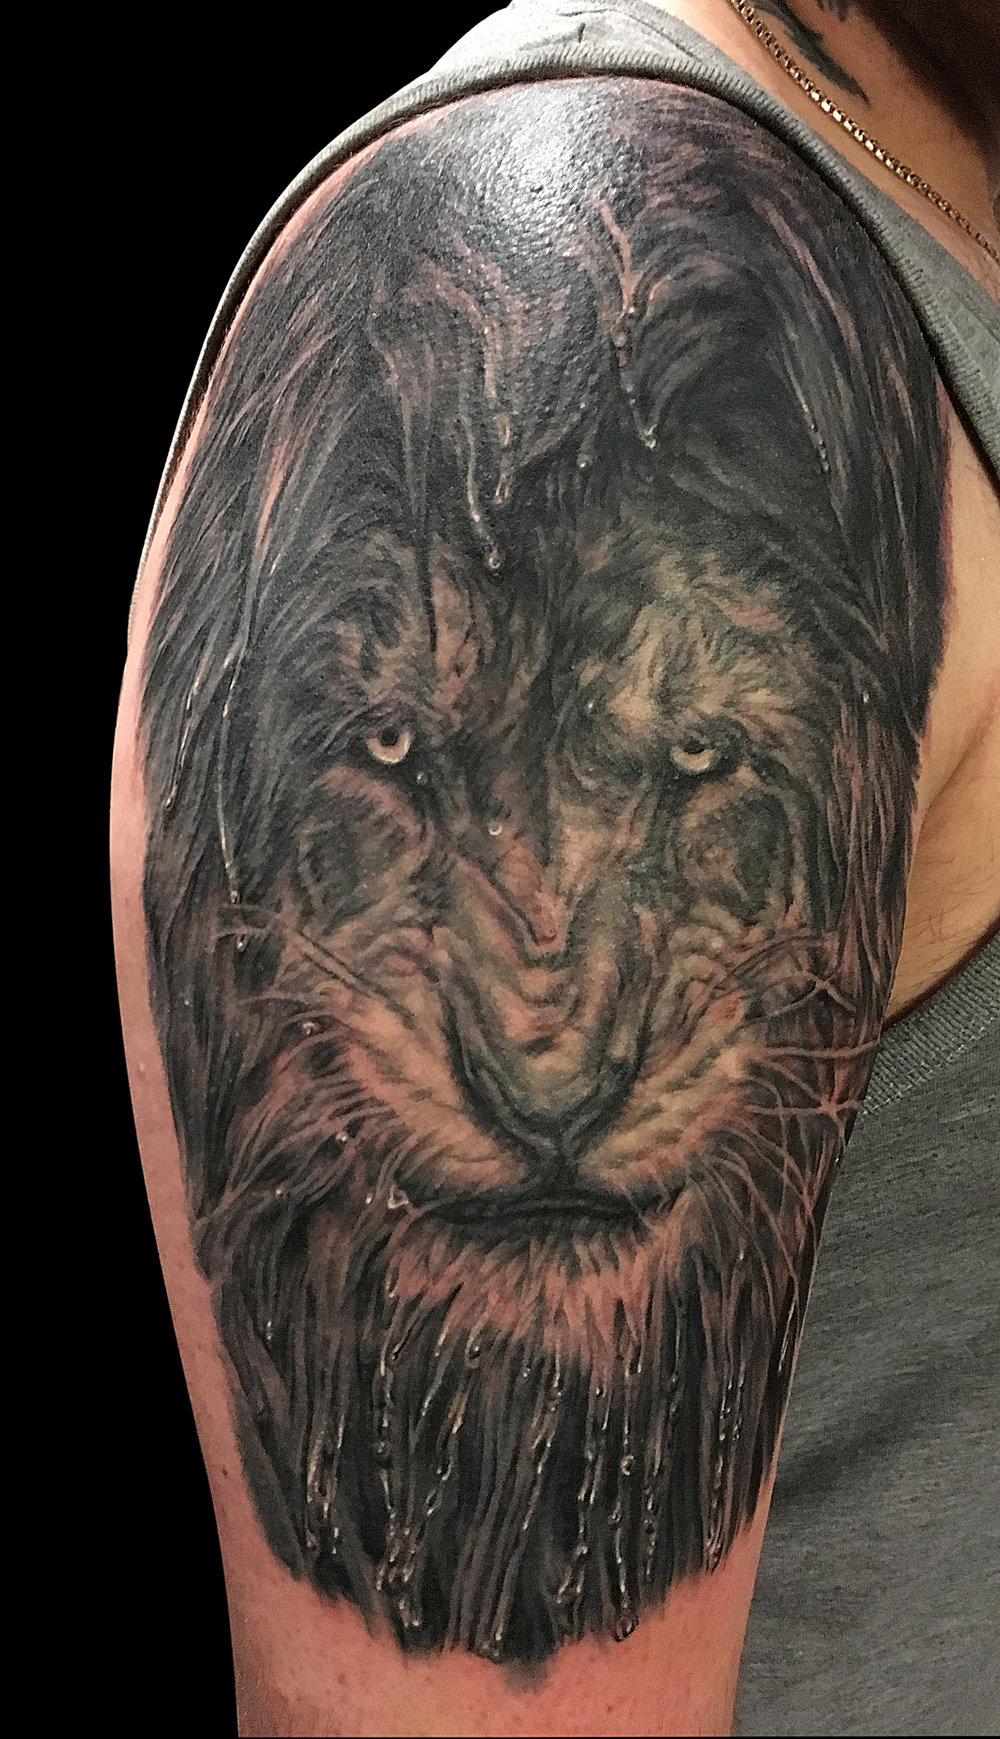 Black and Grey Wet Lion Portrait Tattoo, in progress